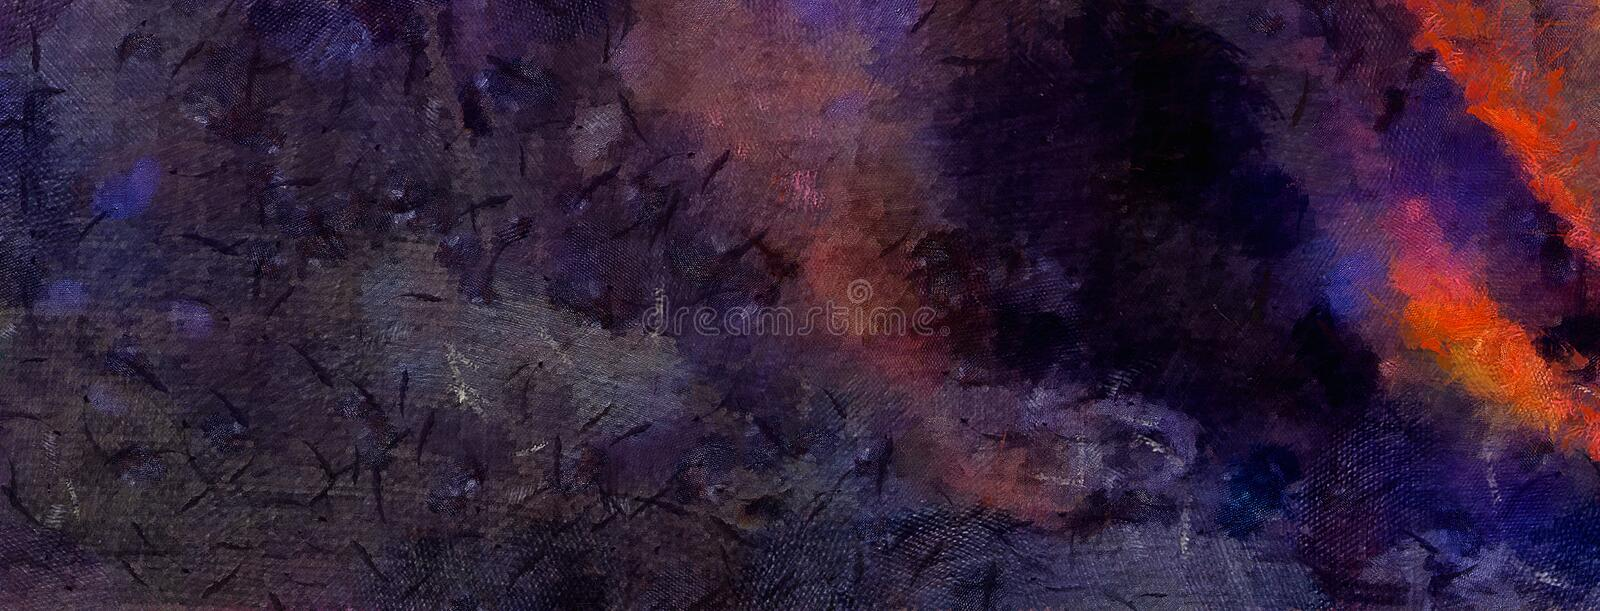 Impression abstract texture art. Artistic bright bacground. Stock. Oil painting artwork. Modern style graphic wallpaper. royalty free illustration